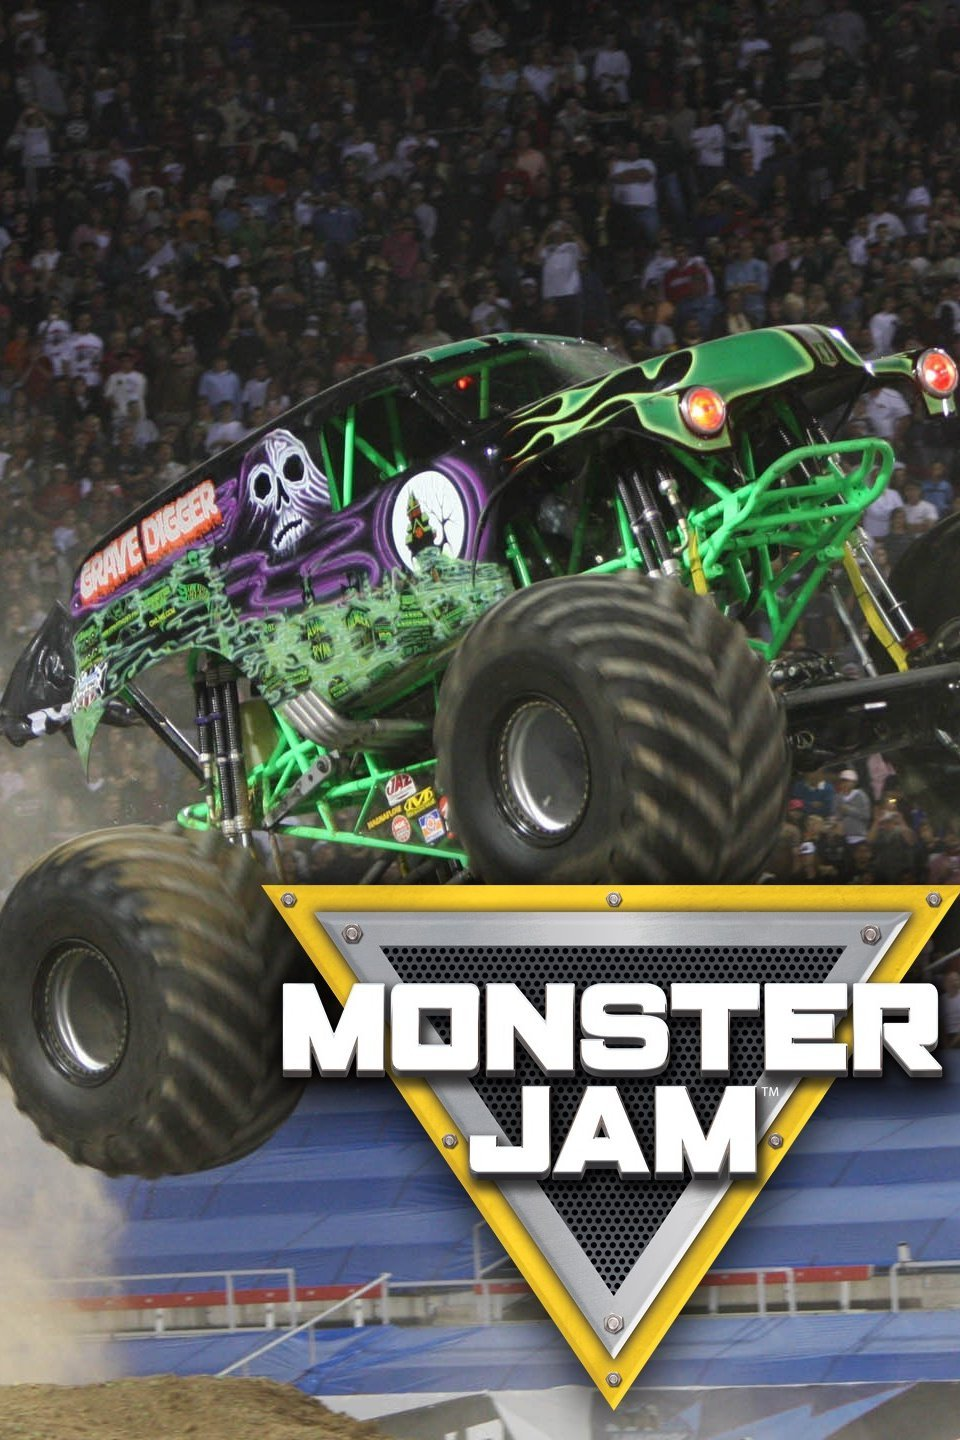 Monster Jam is a live motorsport event tour and television show operated by Feld Entertainment. Monster Jam shows are held throughout the whole year with more shows during the winter than the summer, and travel around the country in U.S. and Canada.